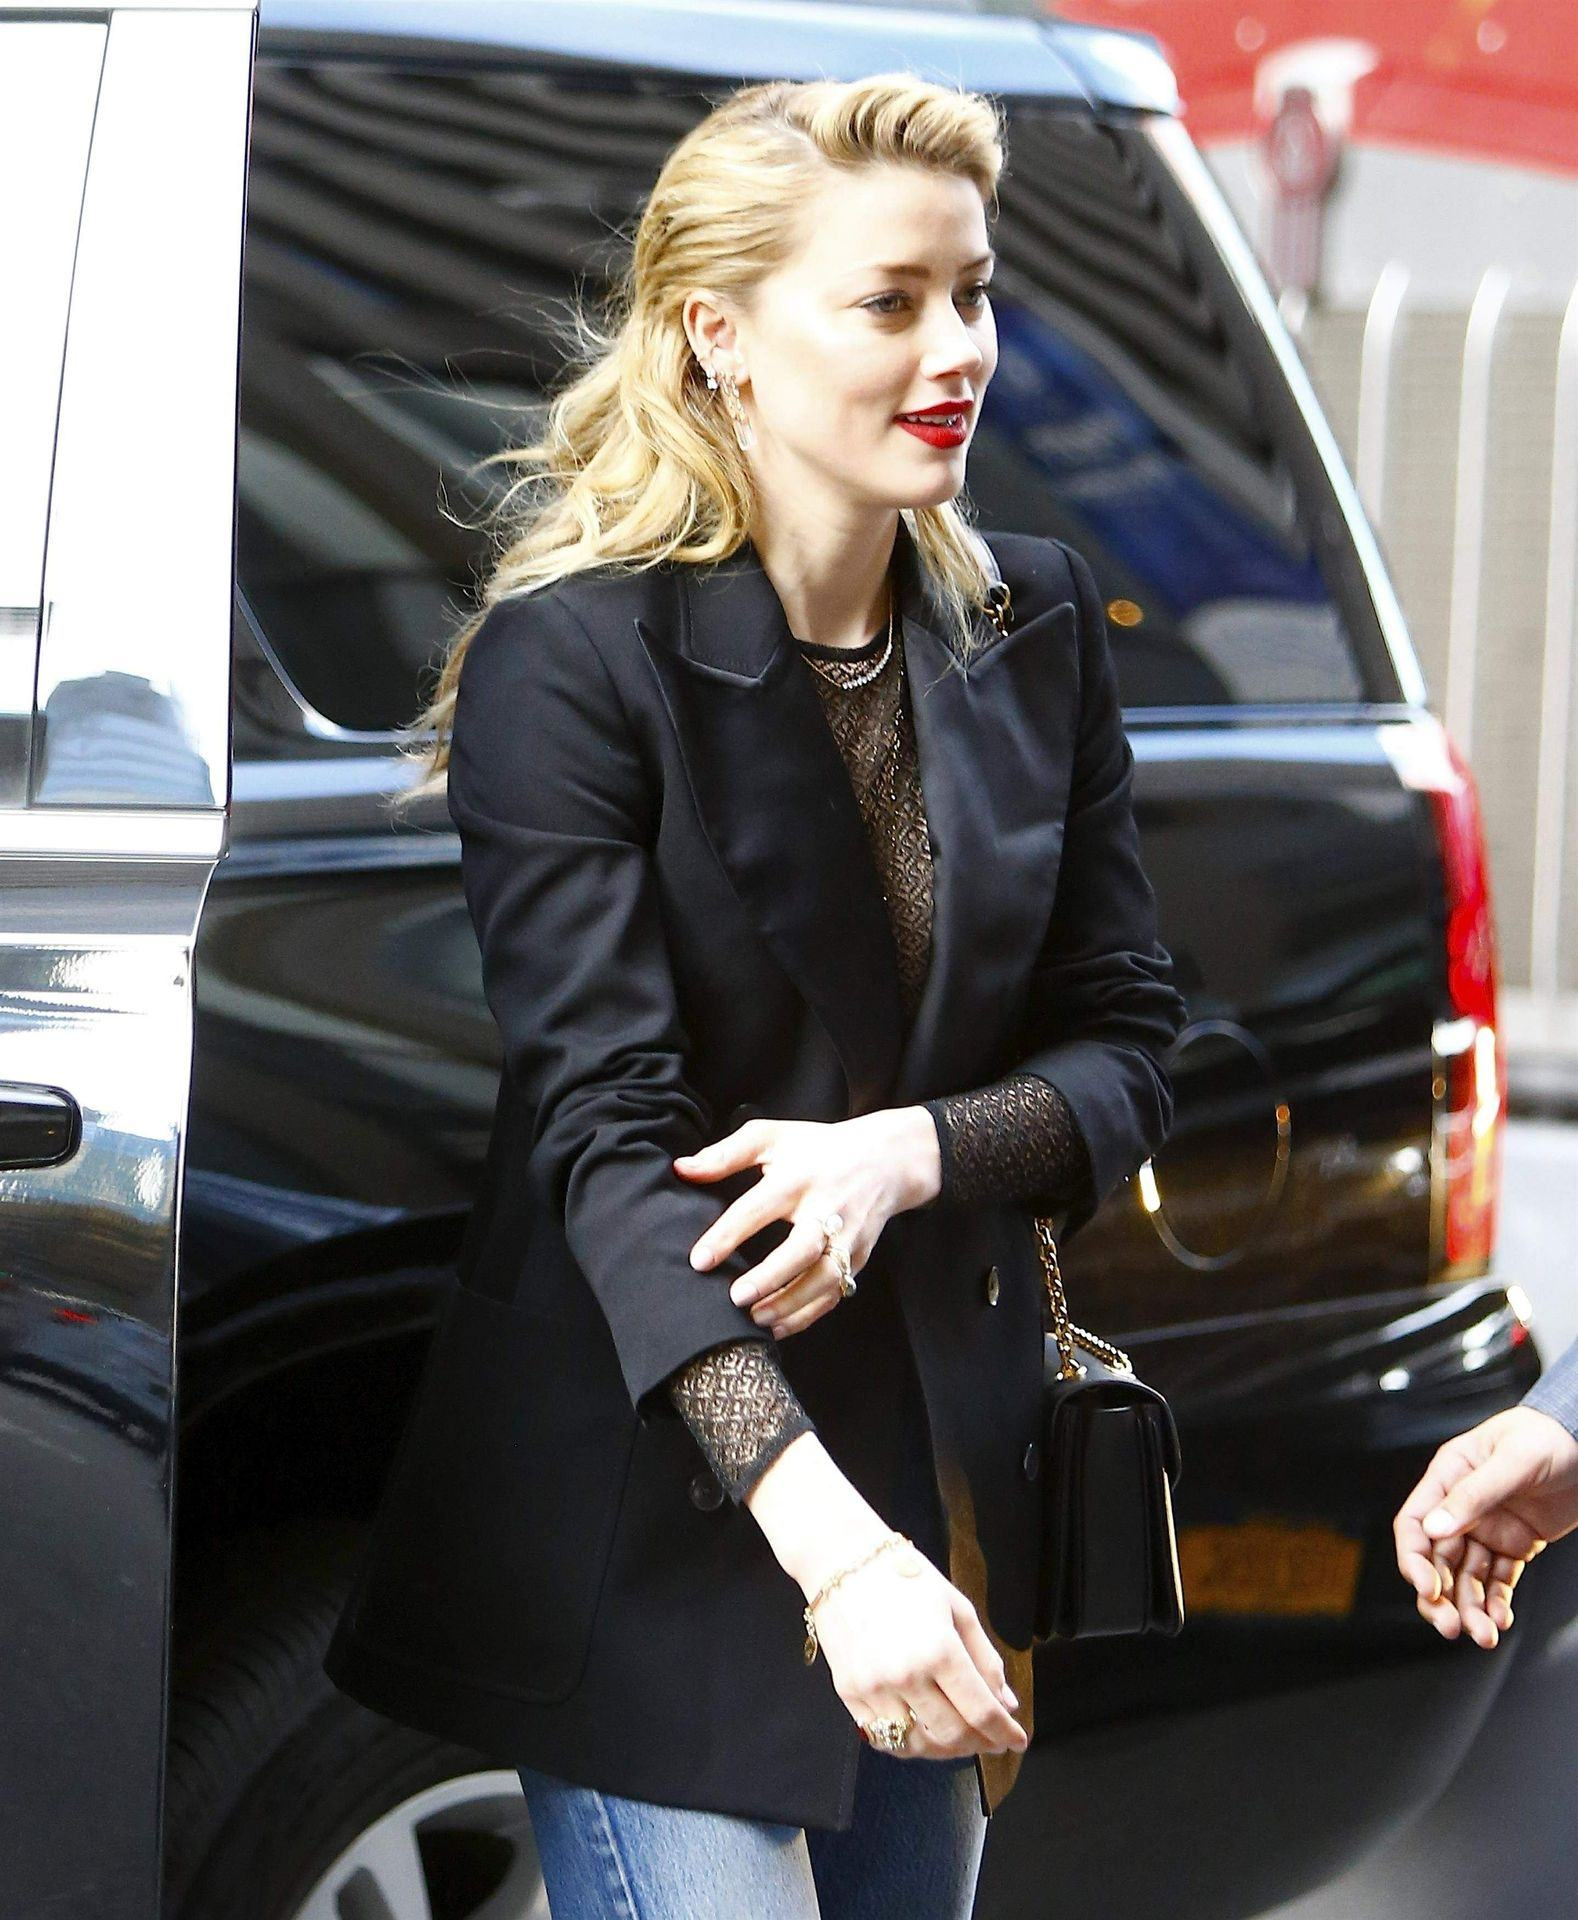 Amber Heard Braless And Side Boobs Shots - Thefappening.link